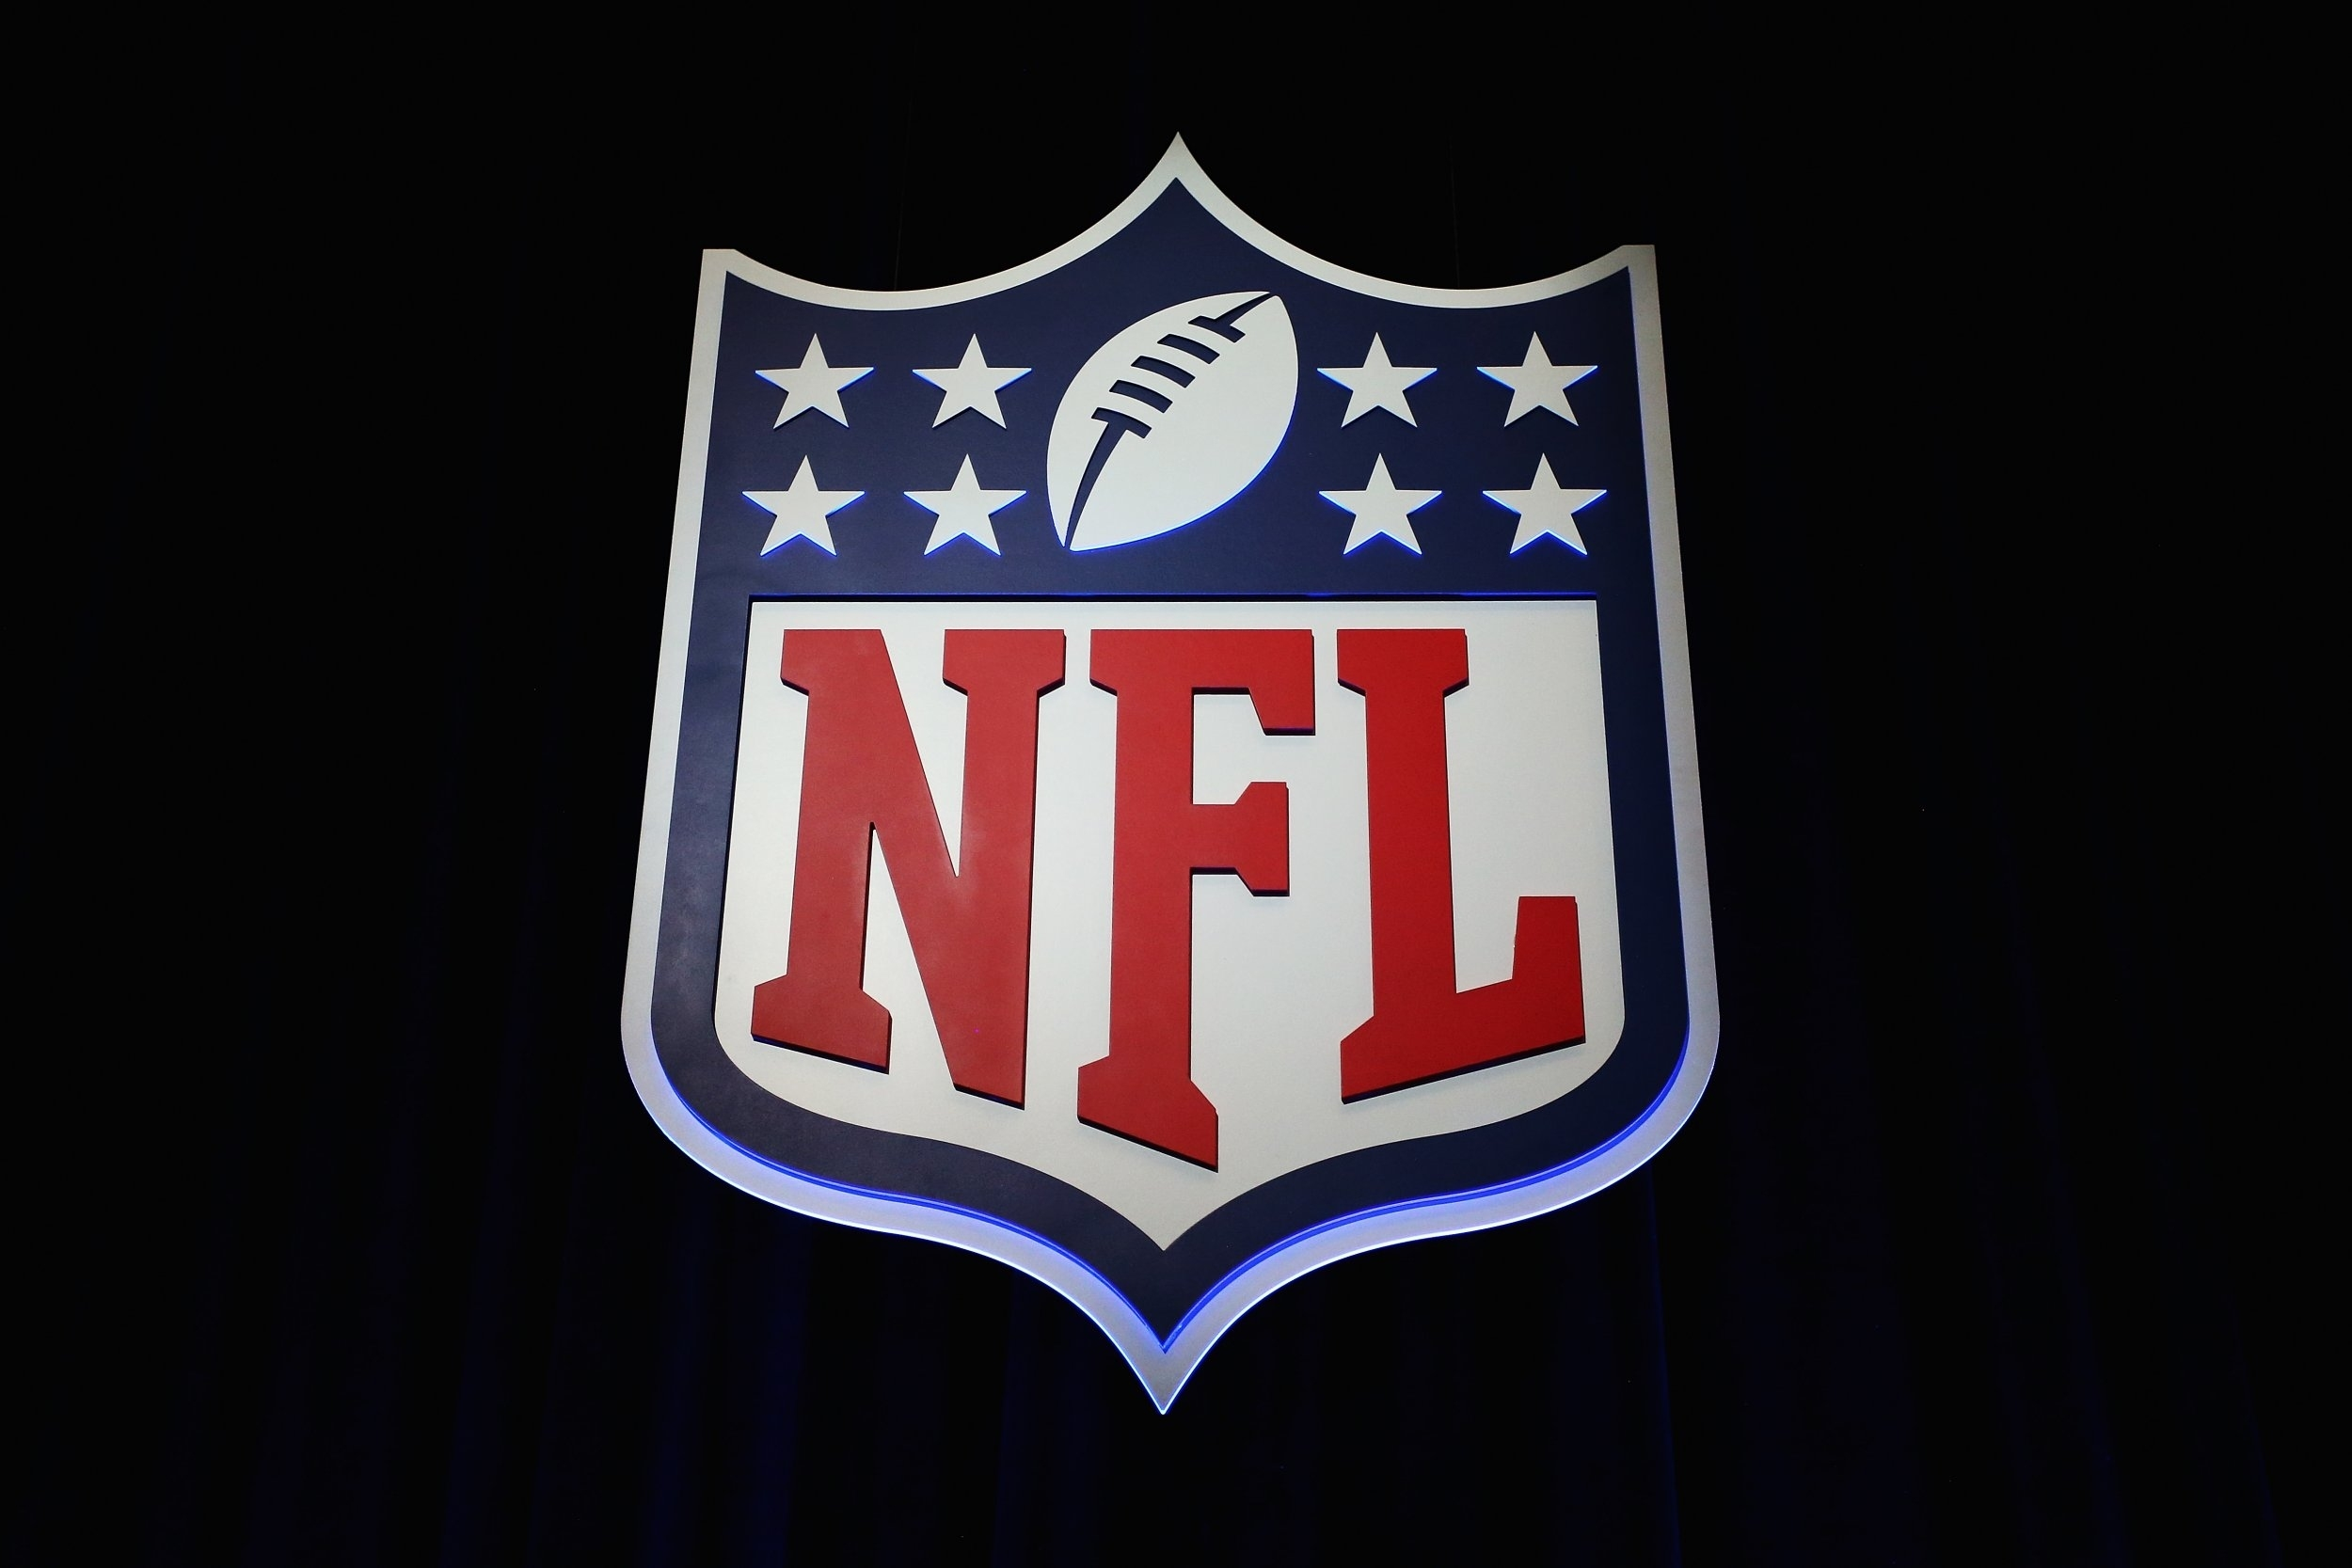 When Is Super Bowl Sunday 2019 And Where Is Super Bowl Liii? intended for Super Bowl Sunday 2019